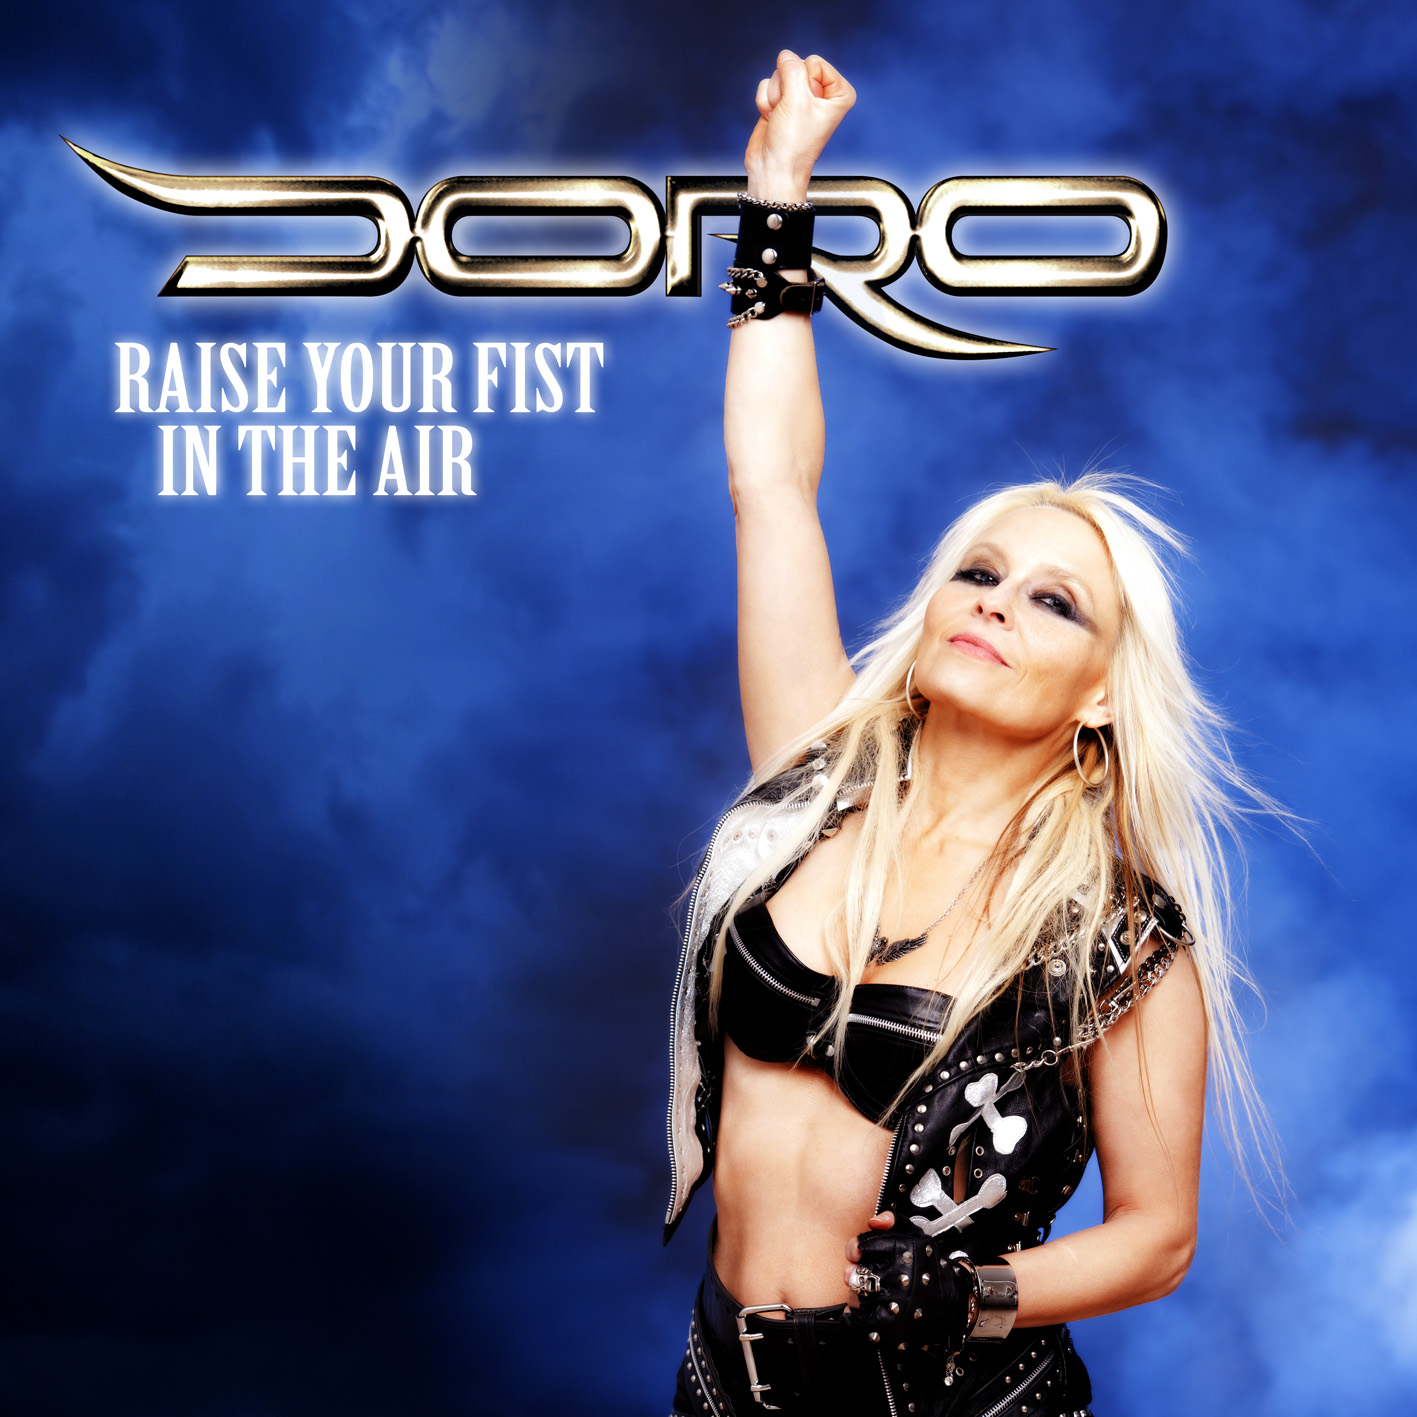 Doro Raise Your Fist In The Air CD and Digital Cover